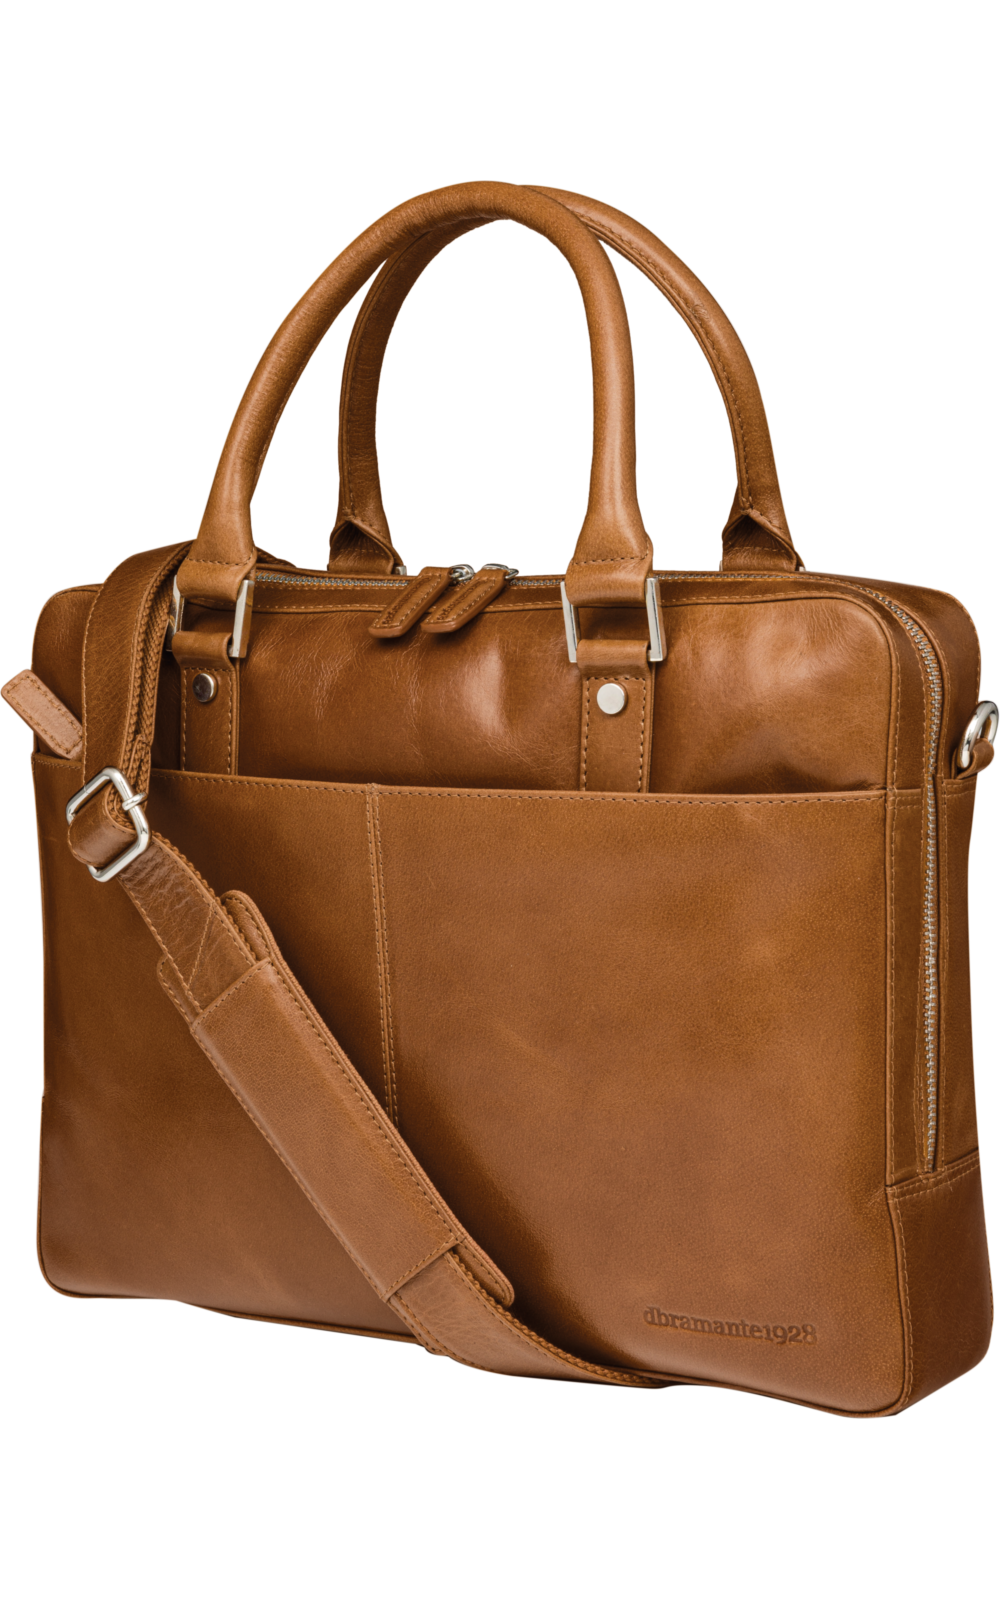 dbramante1928 Briefcase tan